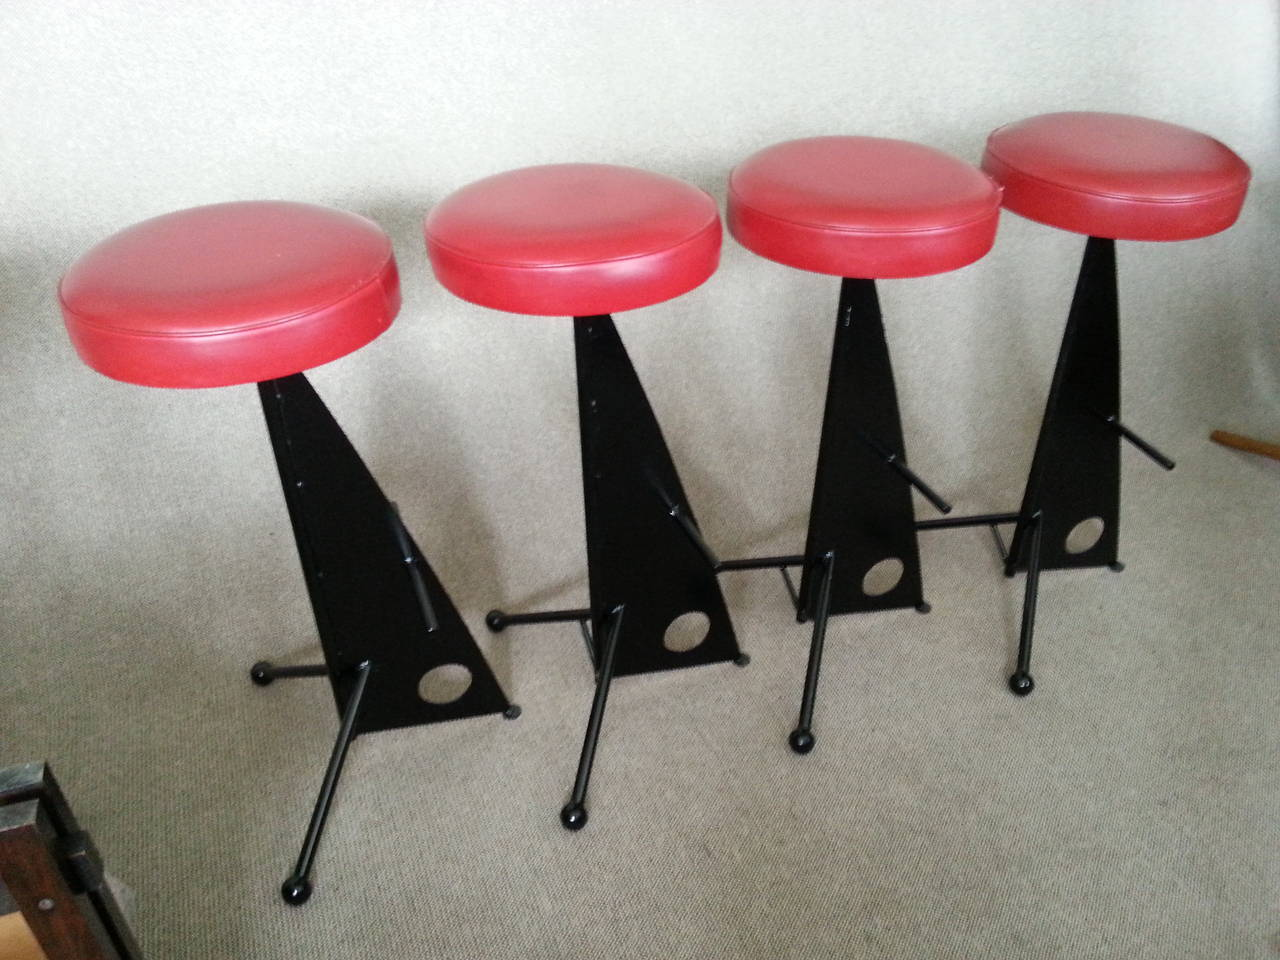 Four iron bar stoolsstyle of Mathieu Matégot, France 1950, black laquered iron, upholstery in red vinyl in perfect vintage condition.  Measures: Height: 32.7 in (83 cm) Seatdiameter: 14.2 in (36 cm) Width: 18.2 in (46 cm)  Note: Rare set, stunning